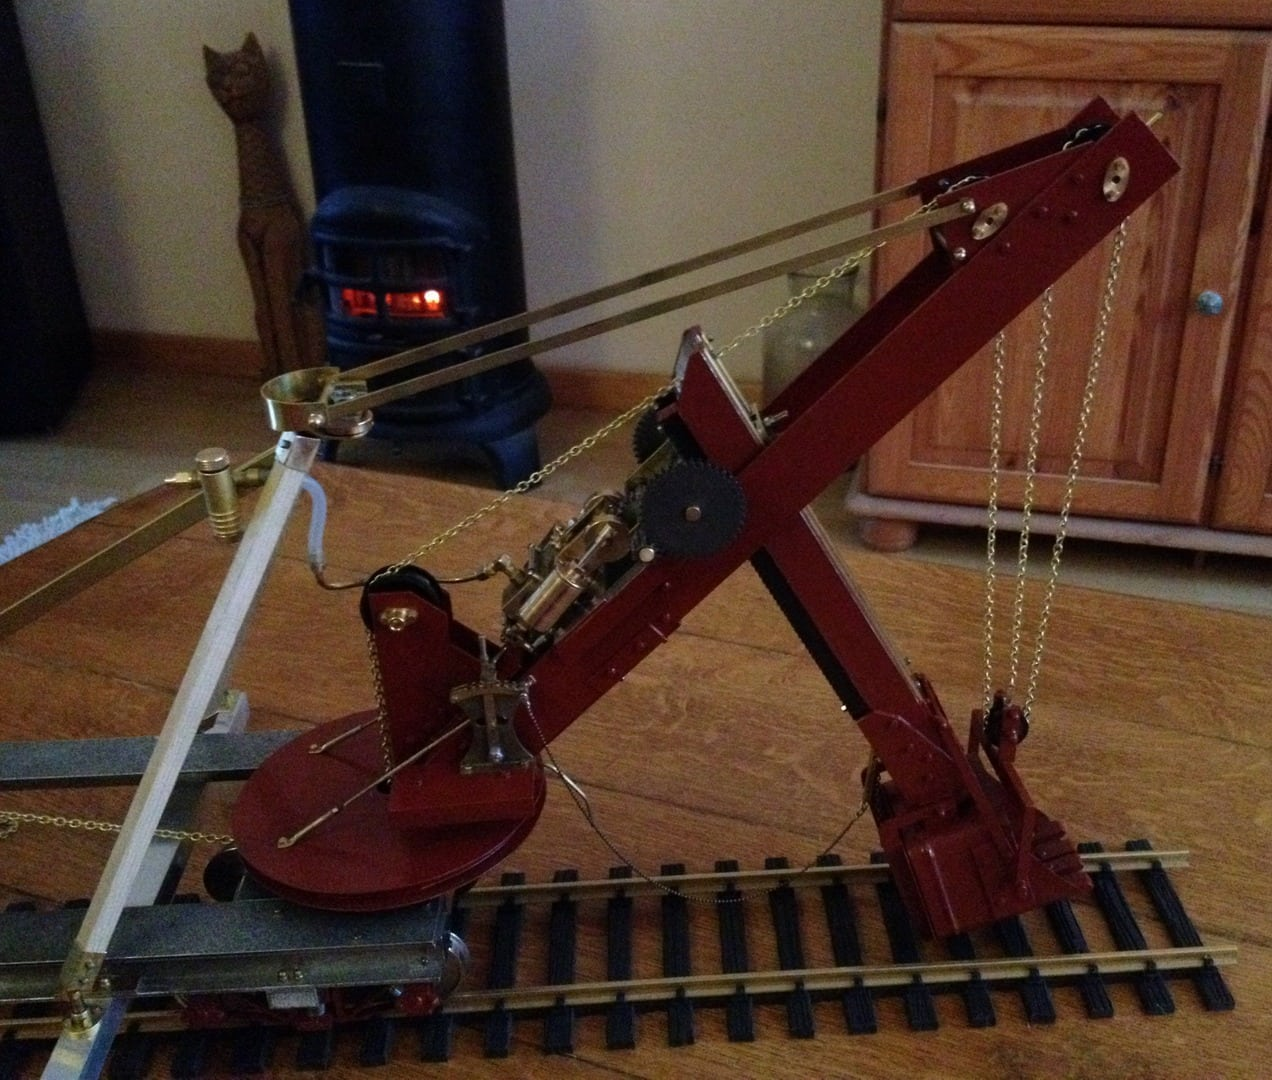 Bucyrus steam shovel